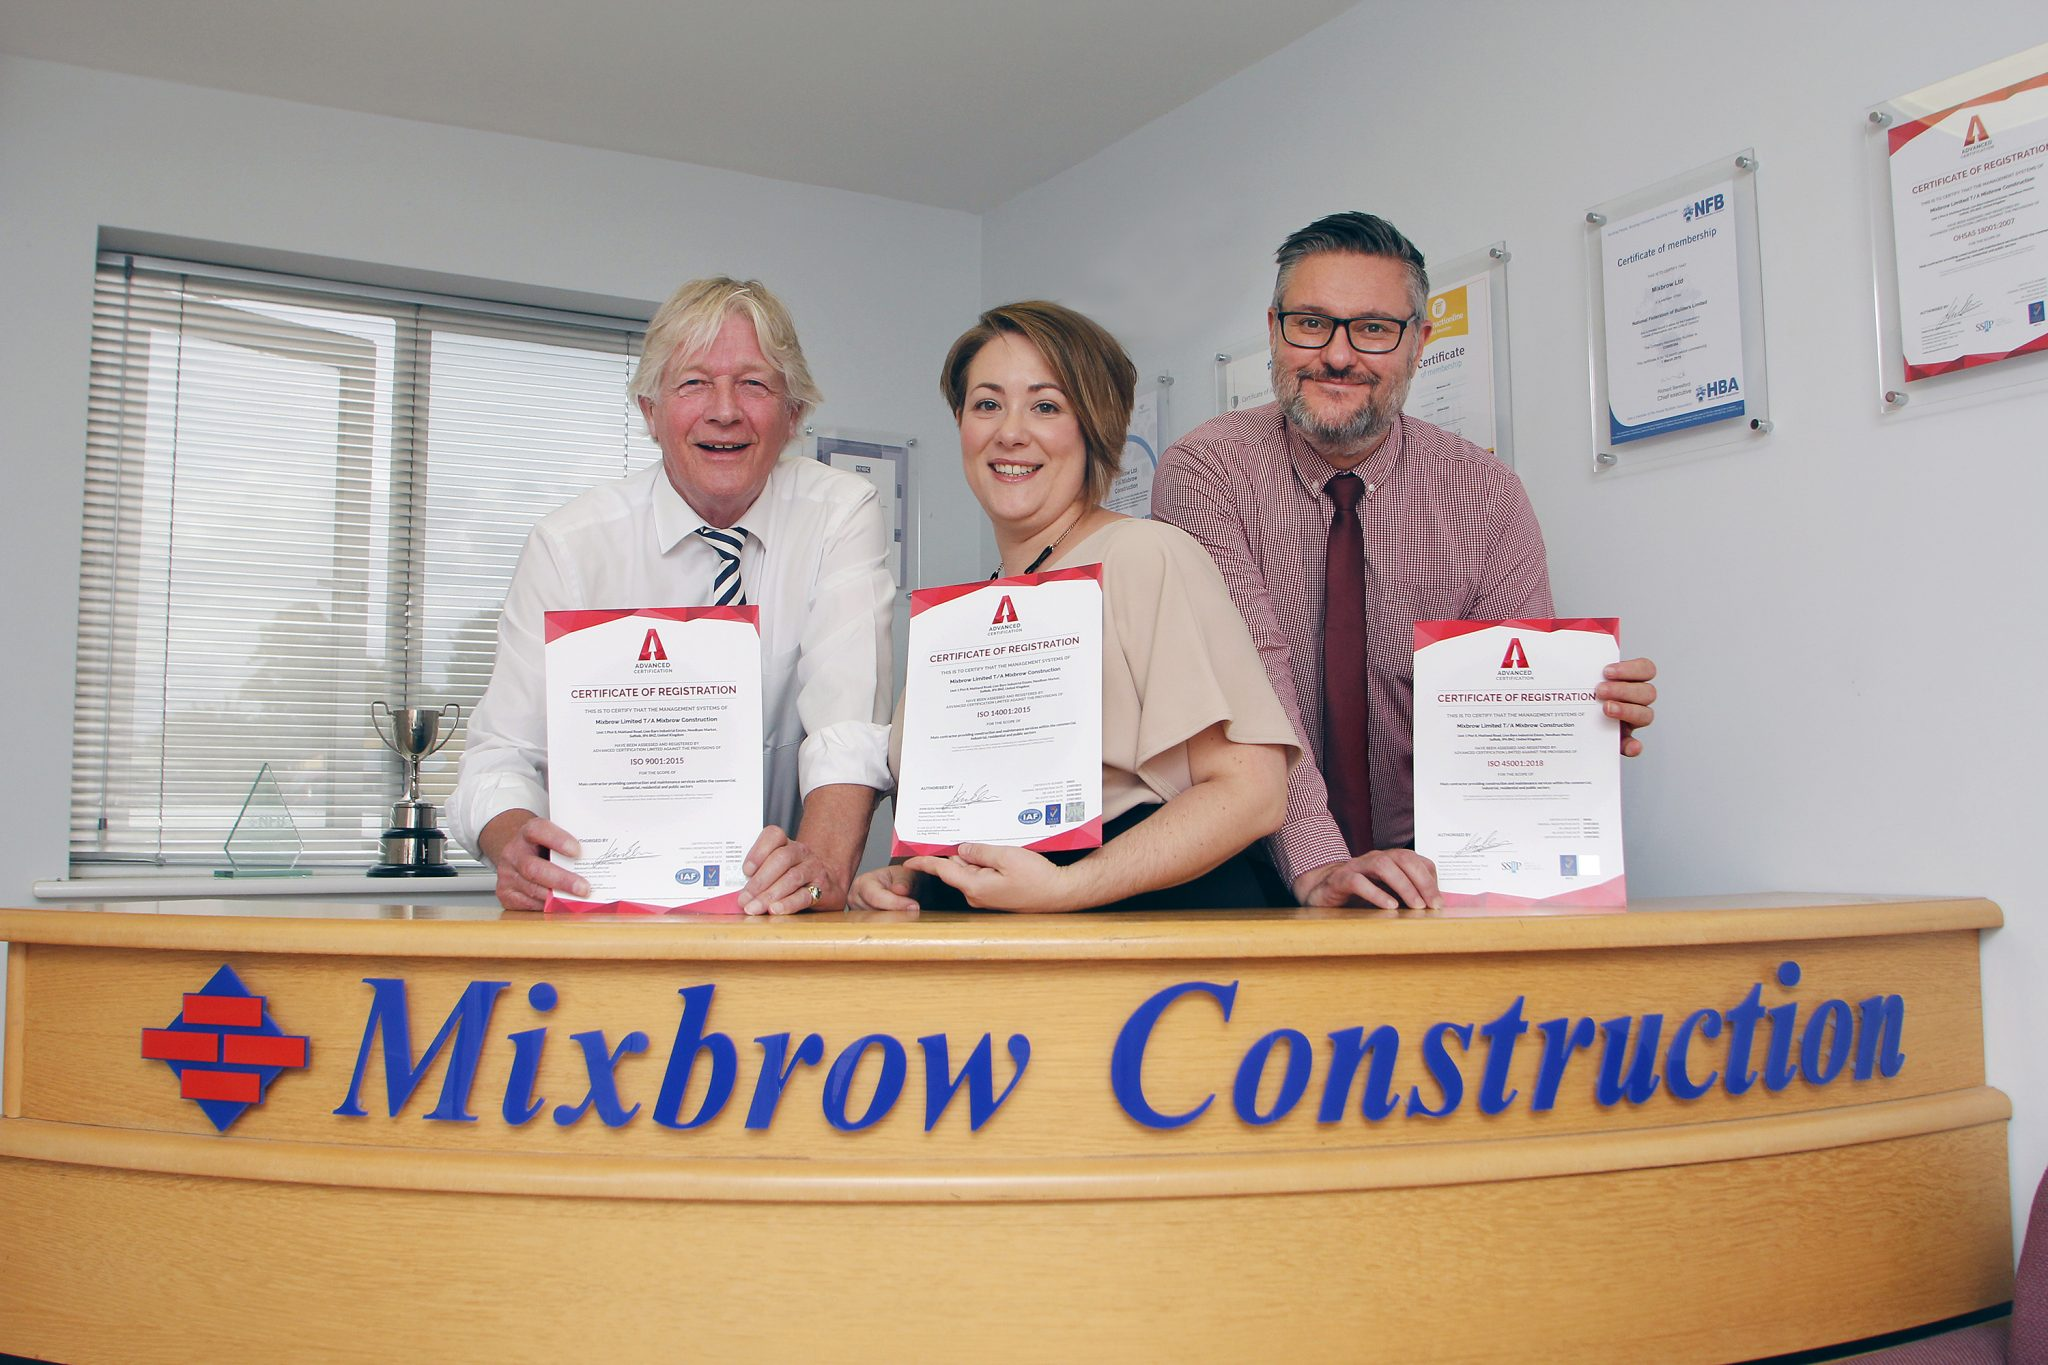 Local construction company achieves a first in ISO accreditation